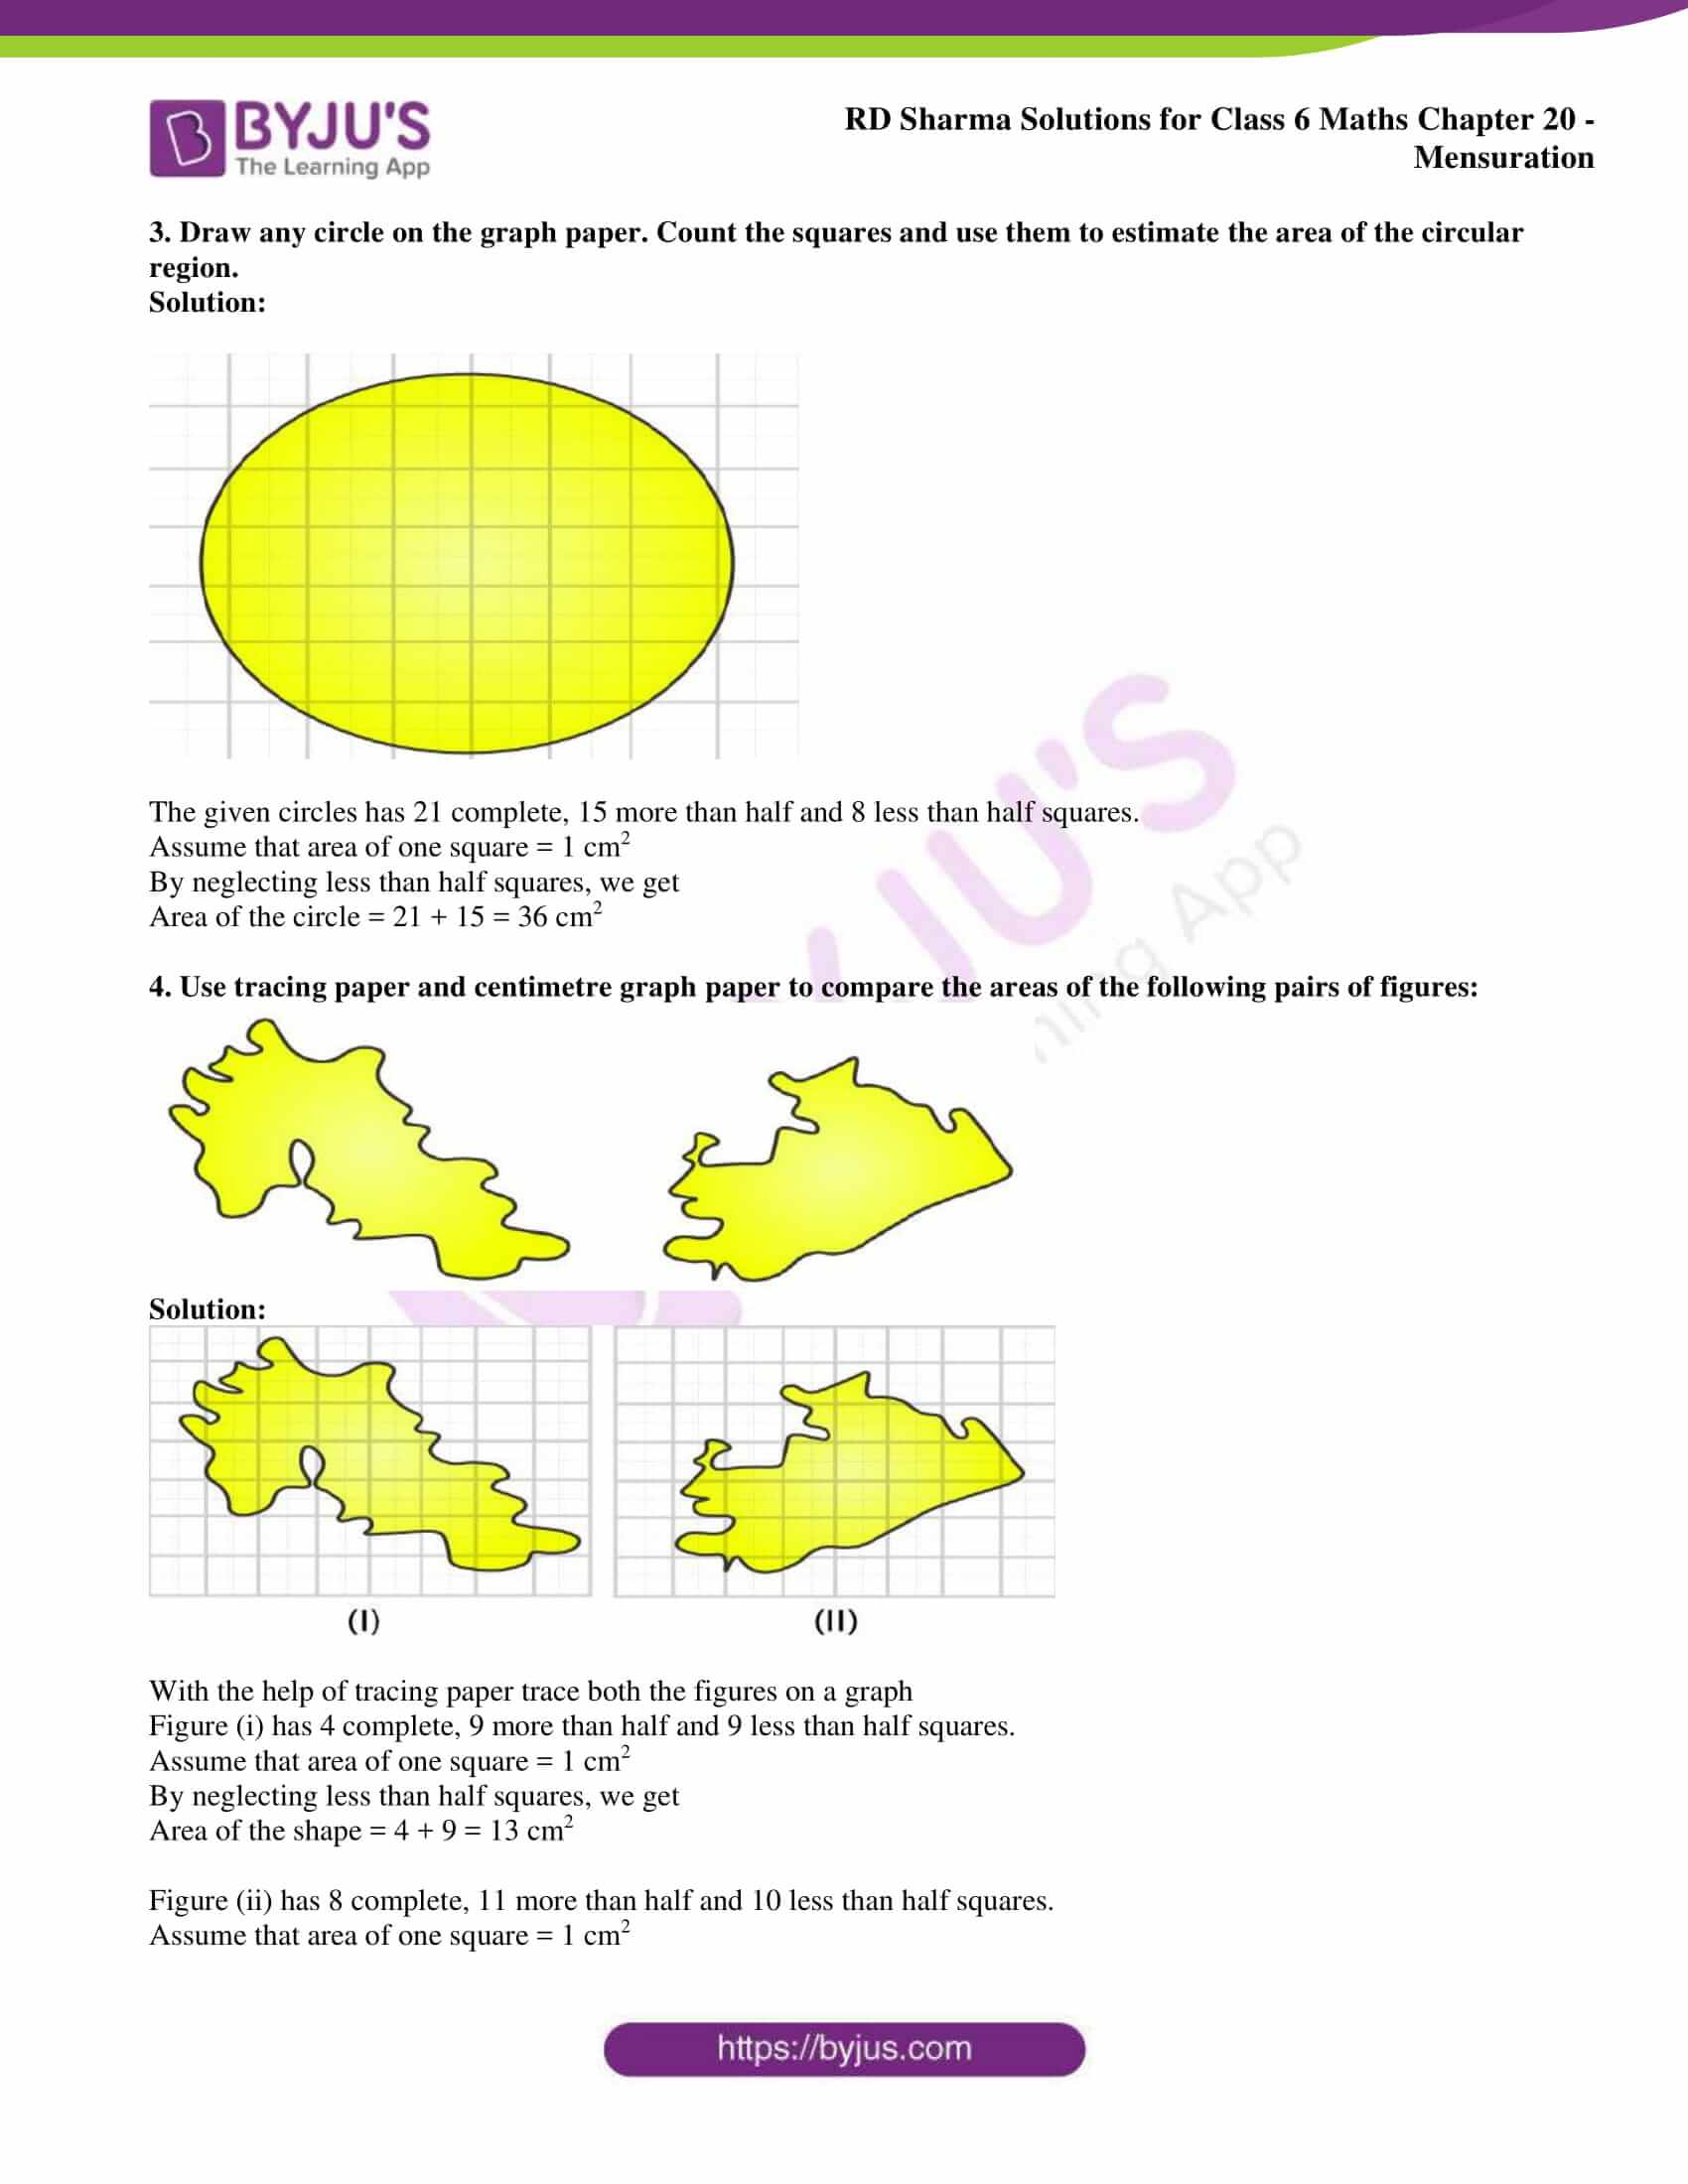 rd sharma solutions class 6 maths chapter 20